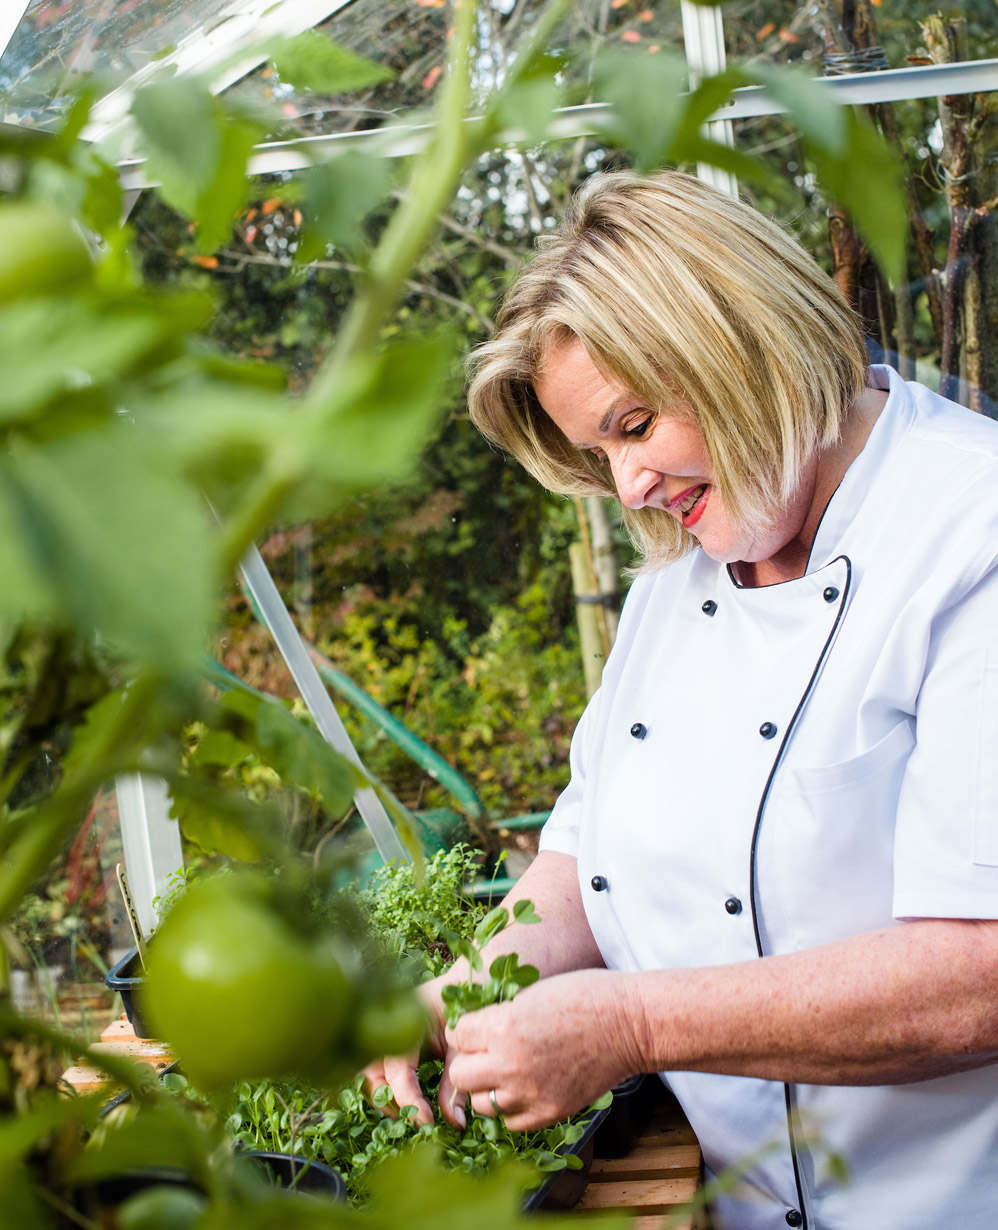 Joyce with Homegrown peas, Blackwell Country House